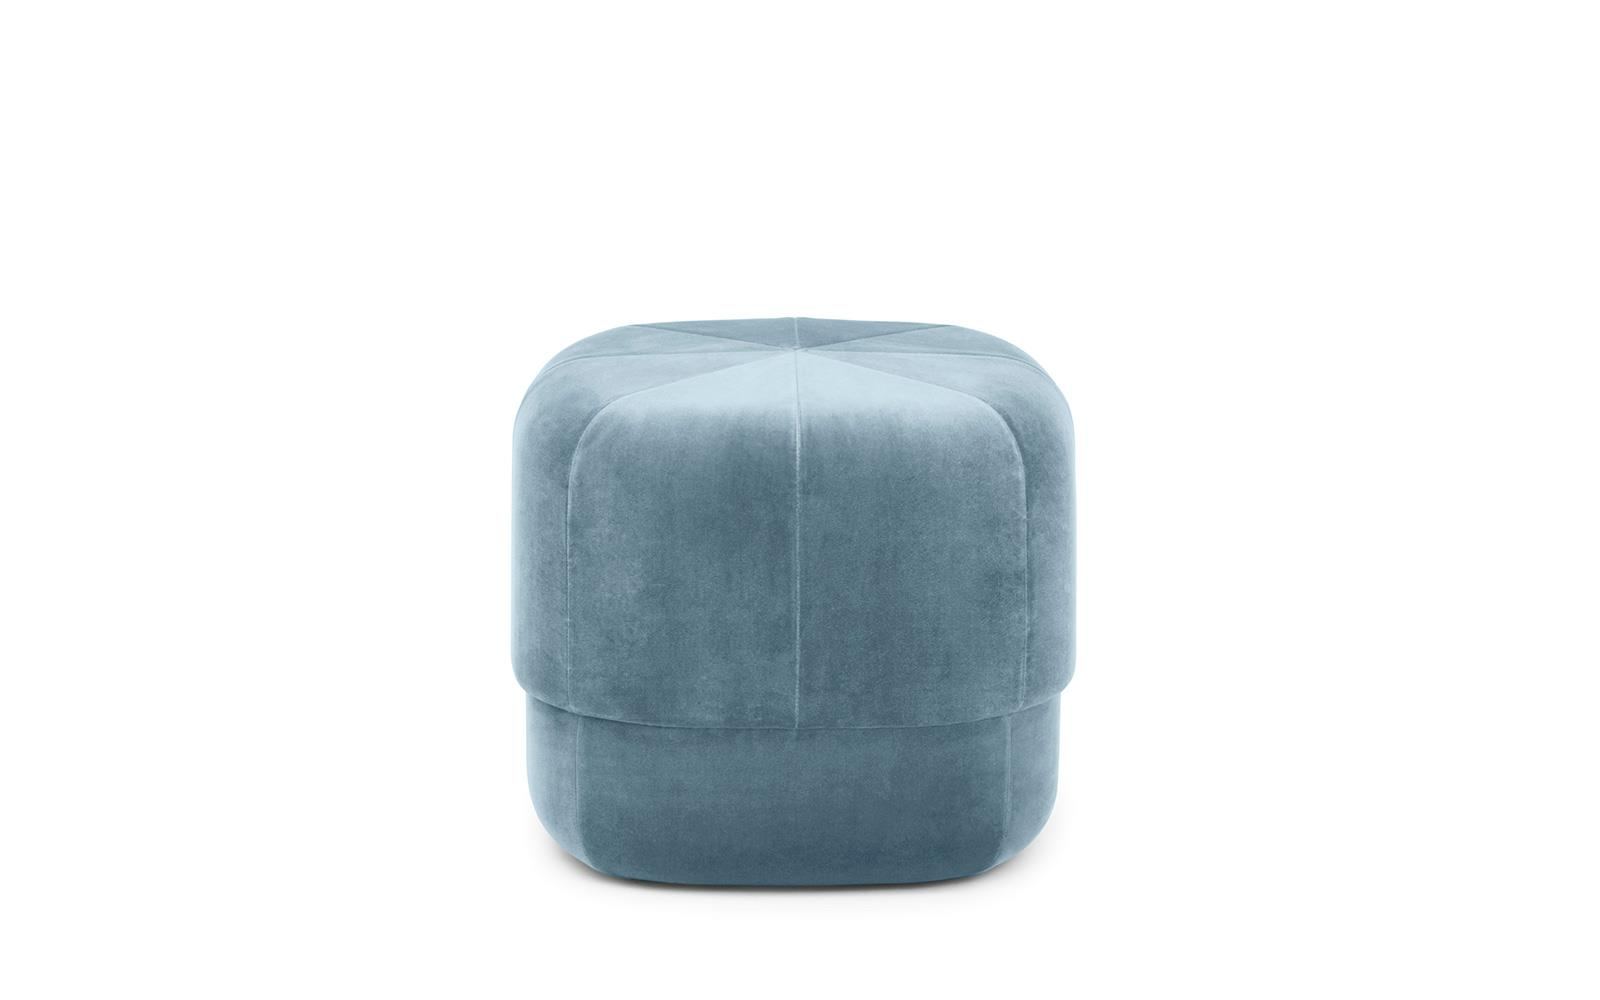 Moroccan Leather Pouf Design Sit Down Pinterest Leather Circus Pouf Small Light Blue